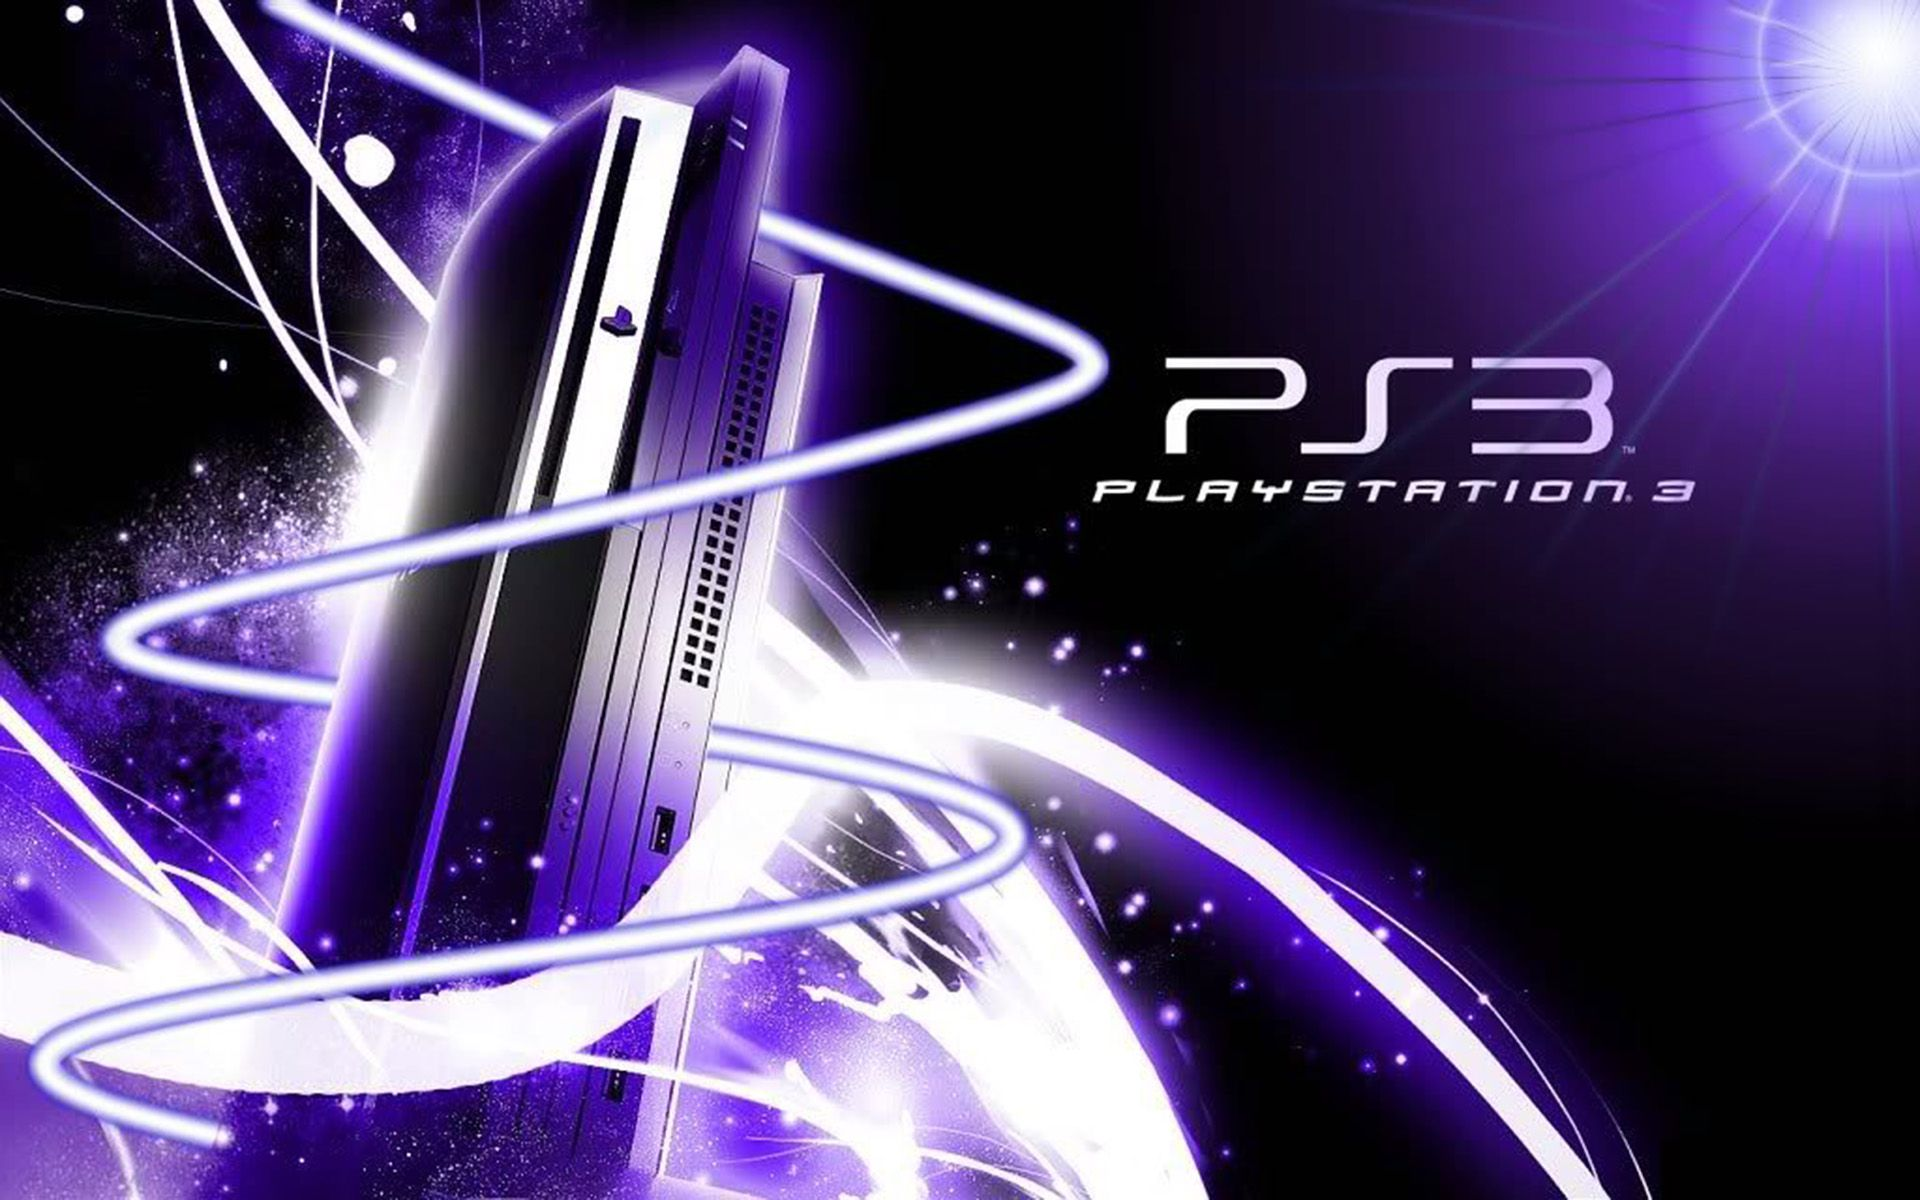 1920x1200 HD Wallpapers For PS3